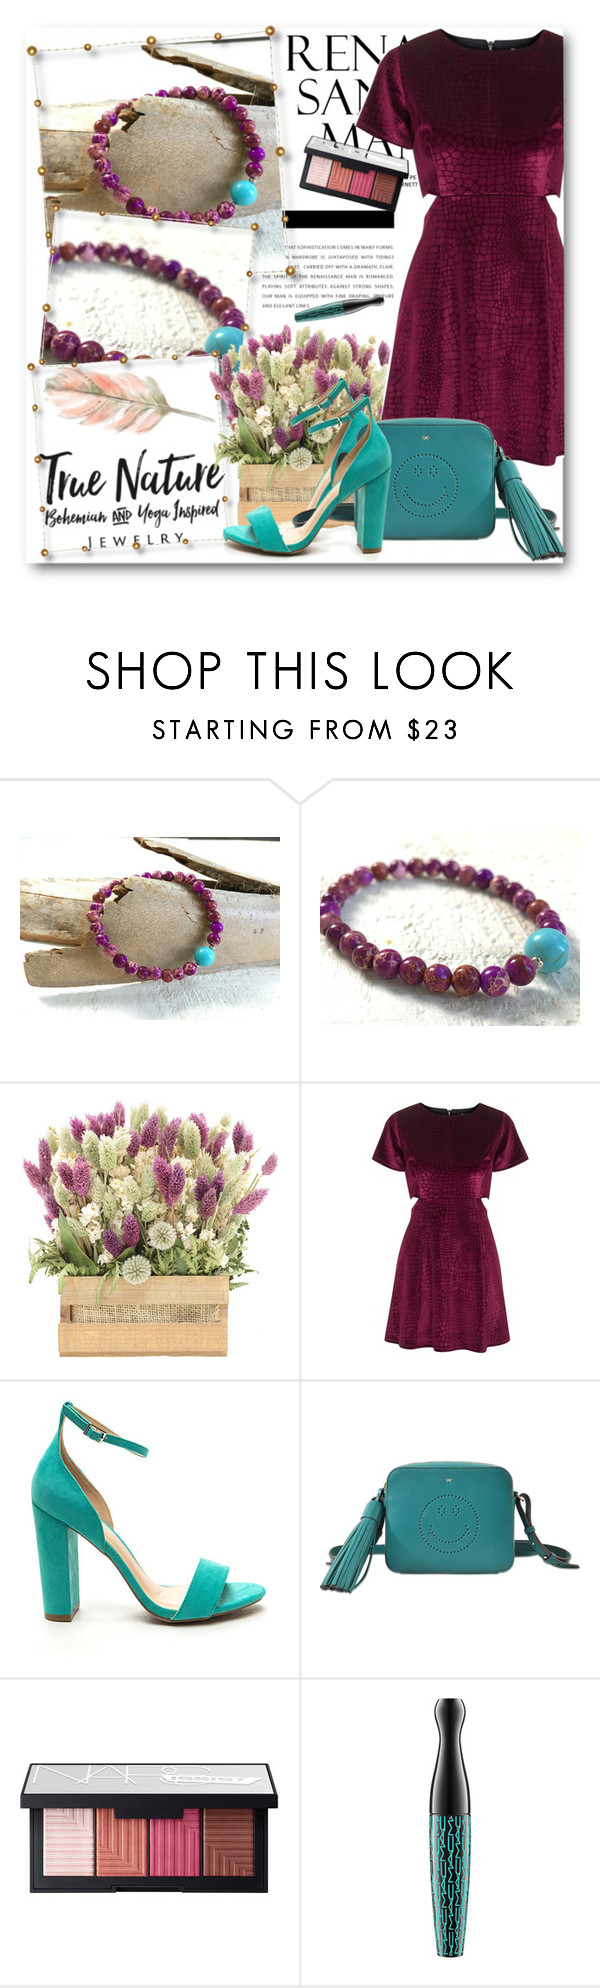 """True Nature Jewelry 2"" by fashionmonsters ❤ liked on Polyvore featuring Topshop, Anya Hindmarch, NARS Cosmetics and MAC Cosmetics"